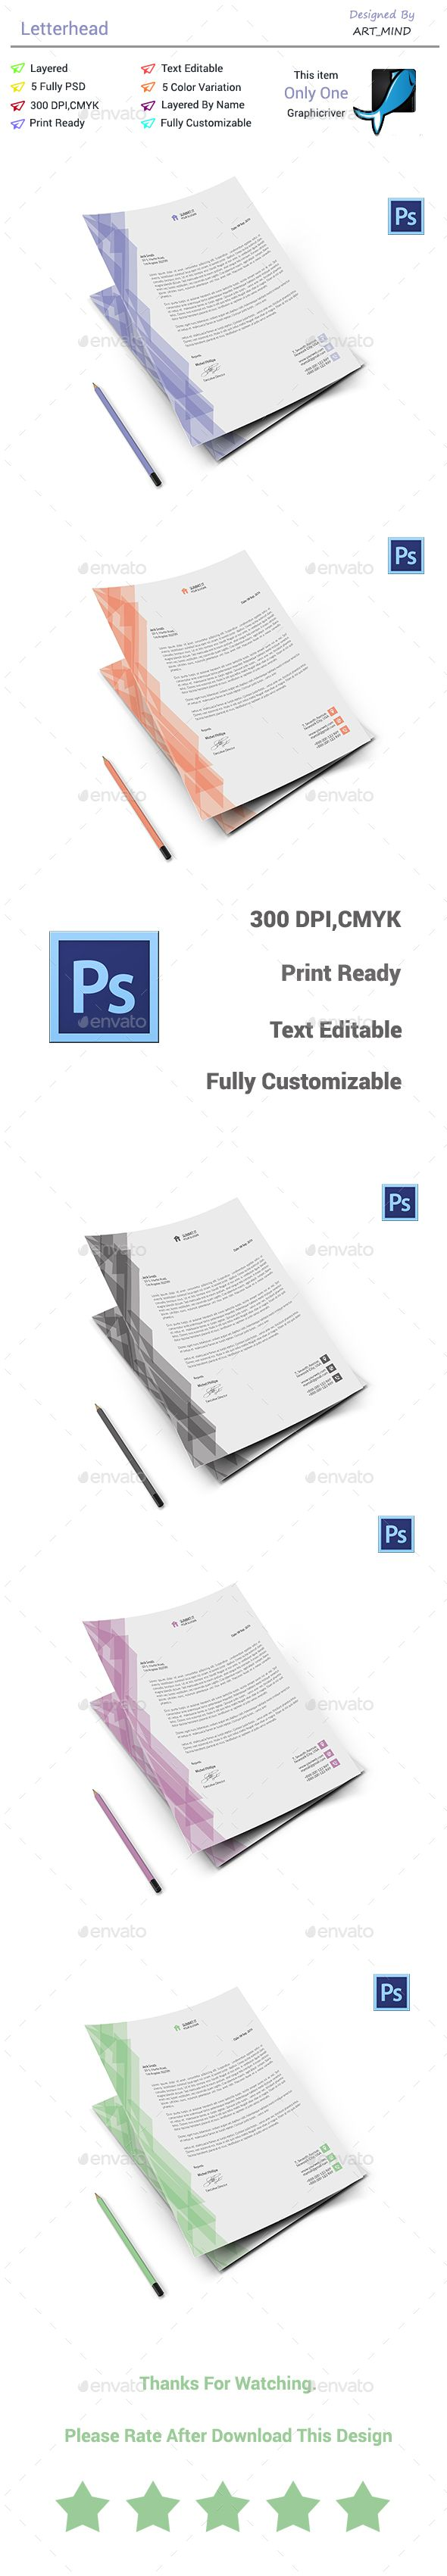 Best Letterhead Templates Images On   Print